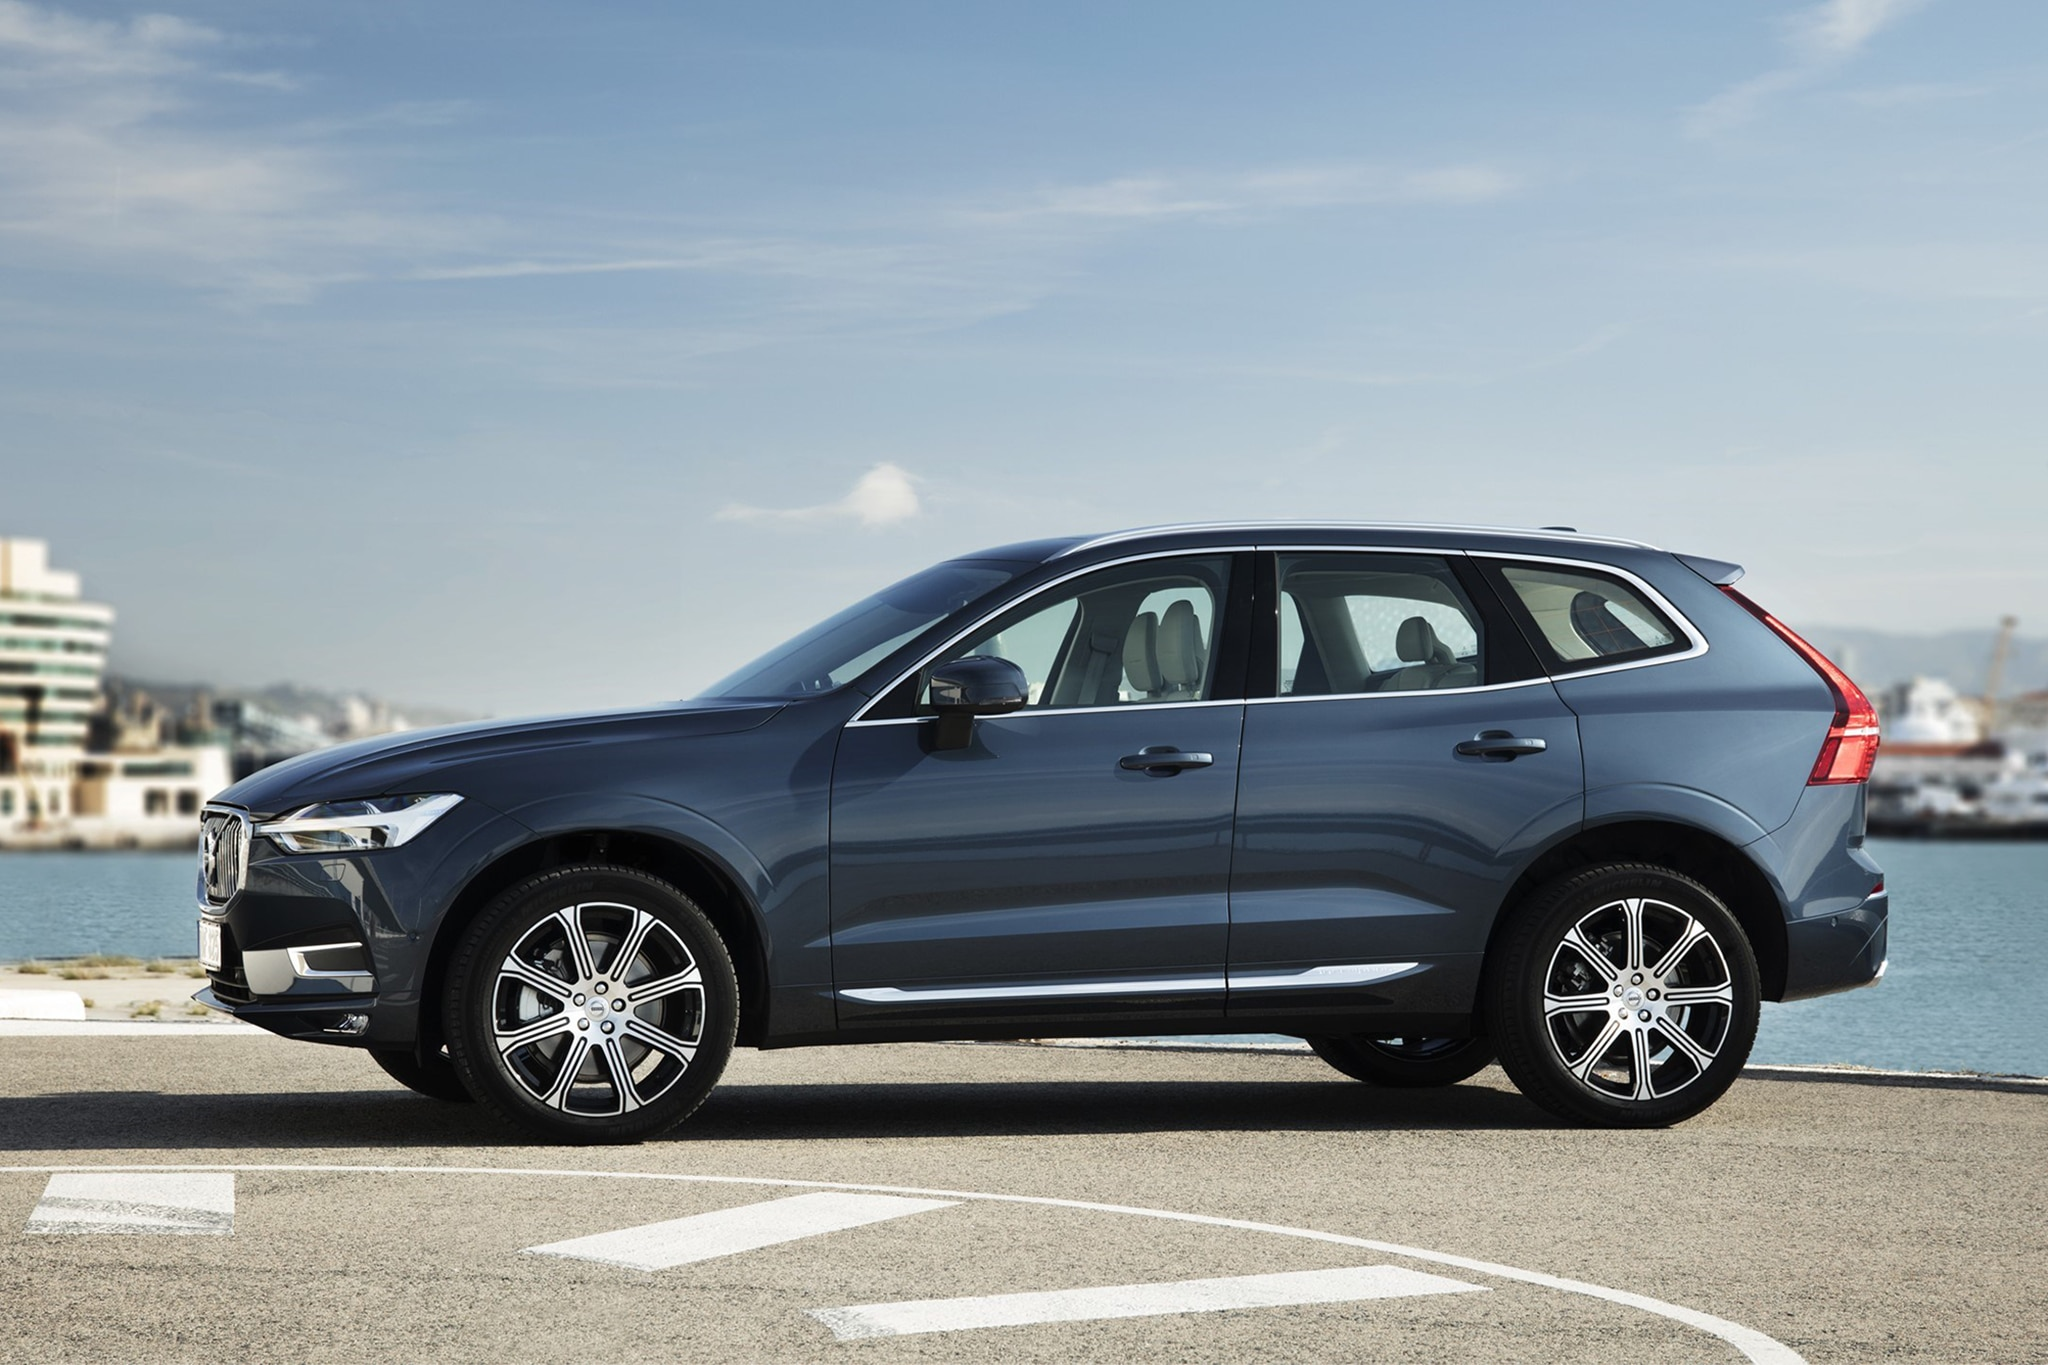 2018 Volvo XC60 Side Profile 01